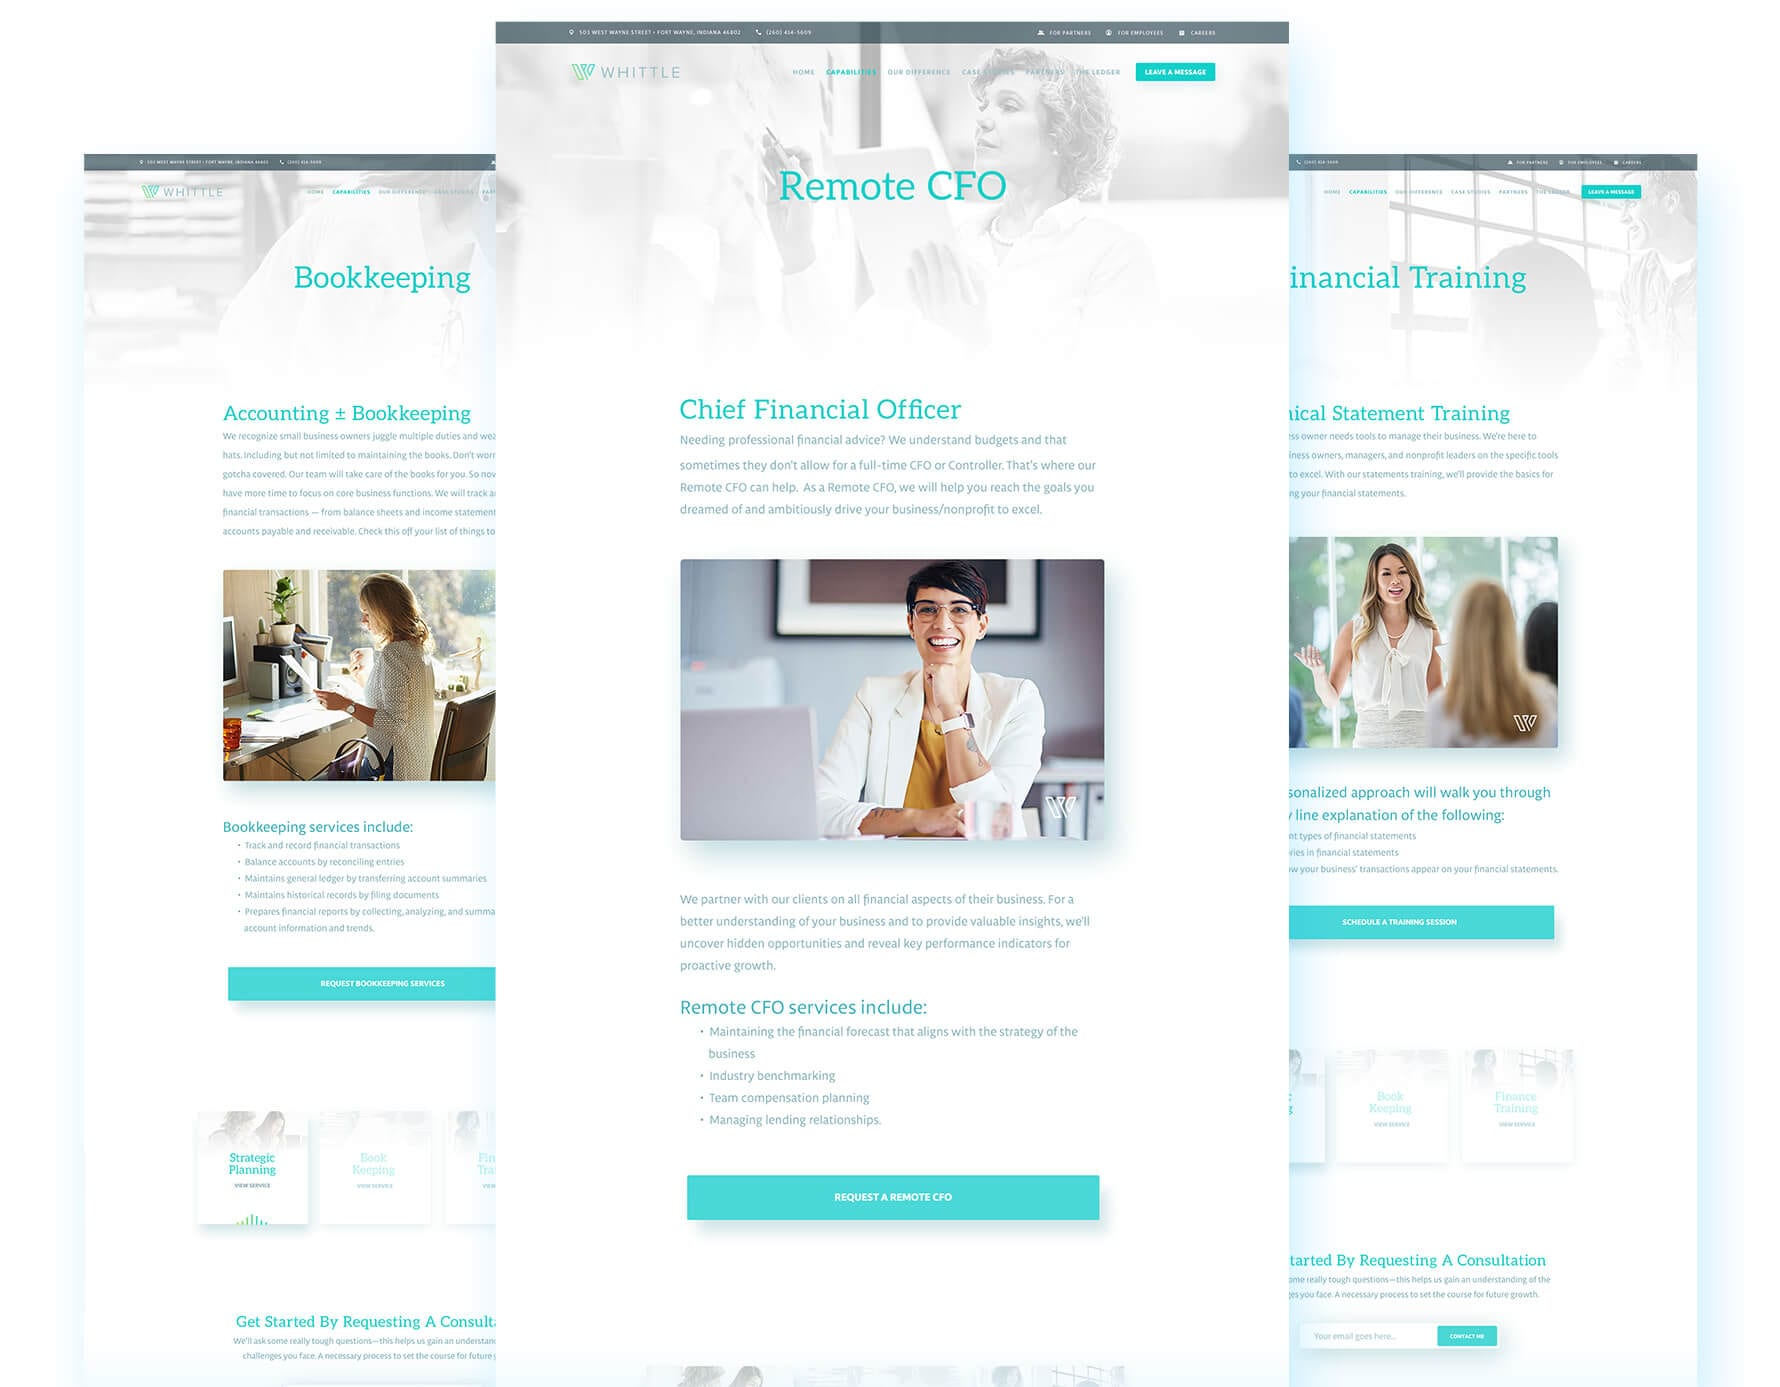 Whittle-Strategies_Proactive-Accounting_WhittleStrategies-com_Responsive-Web-Design_RWD-Wordpress_Wireframes_Wireframing